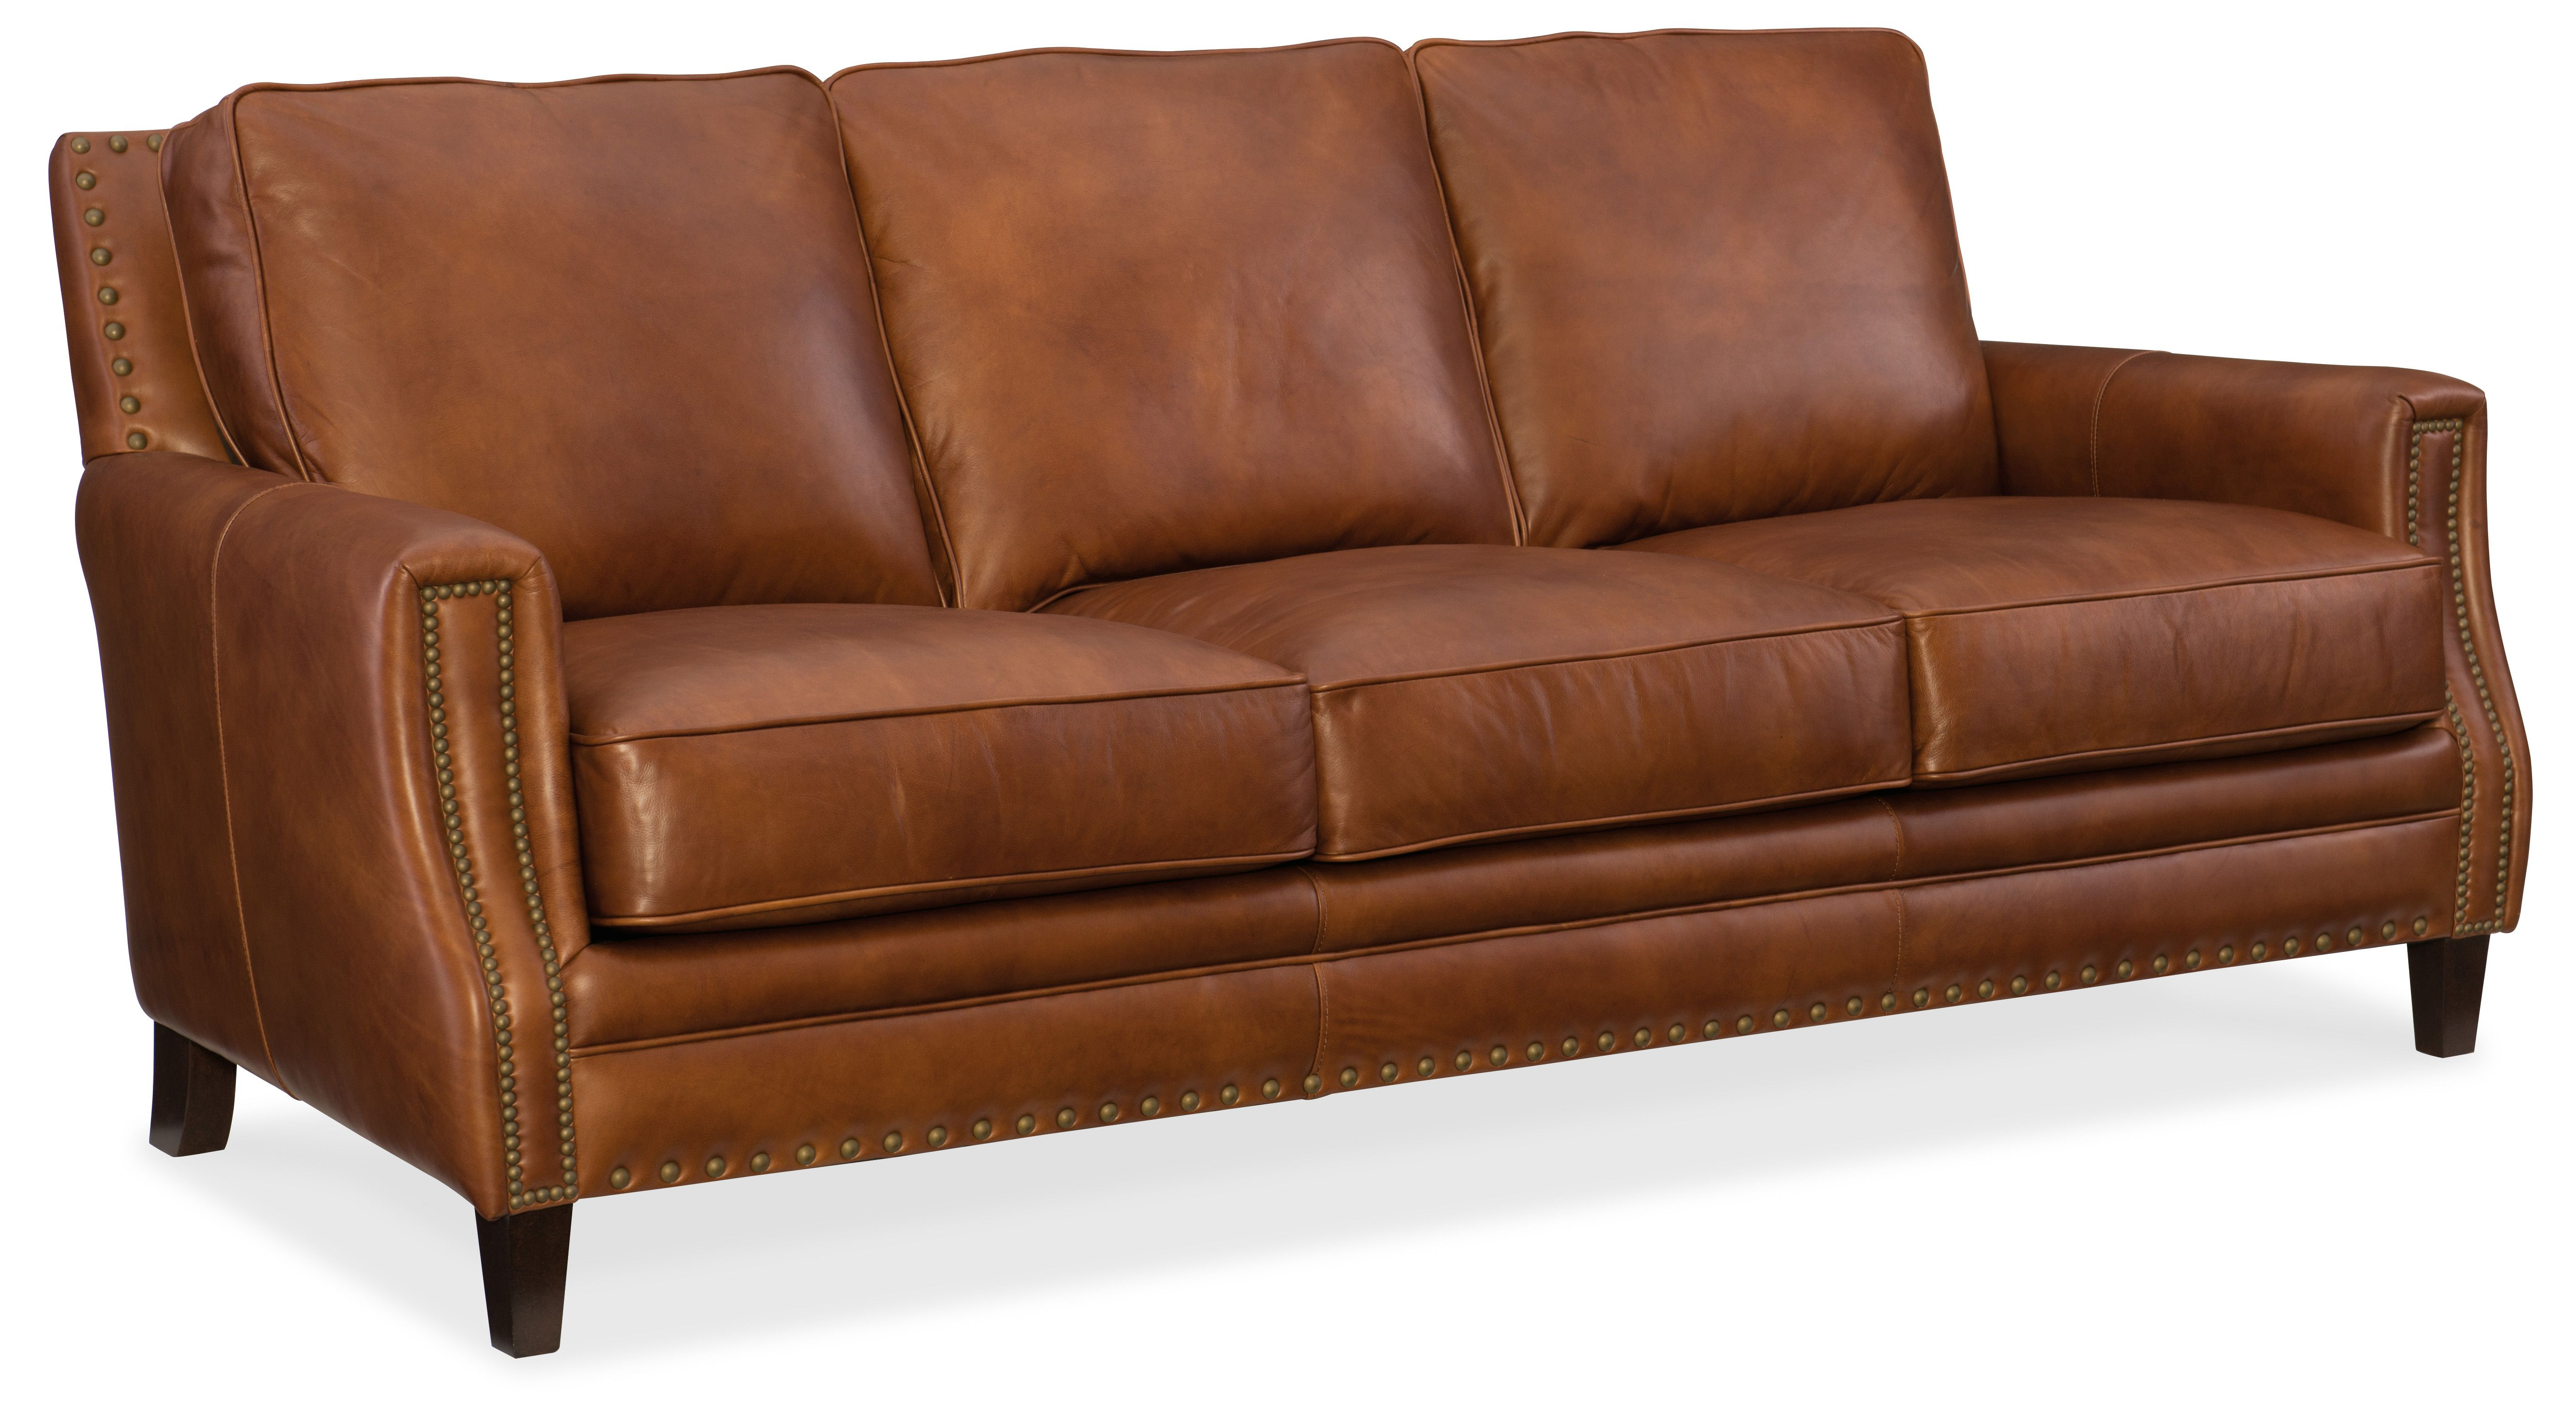 Shop For Hooker Furniture Exton Stationary Sofa, And Other Living Room  Sofas At Turner Home In Jacksonville, FL.